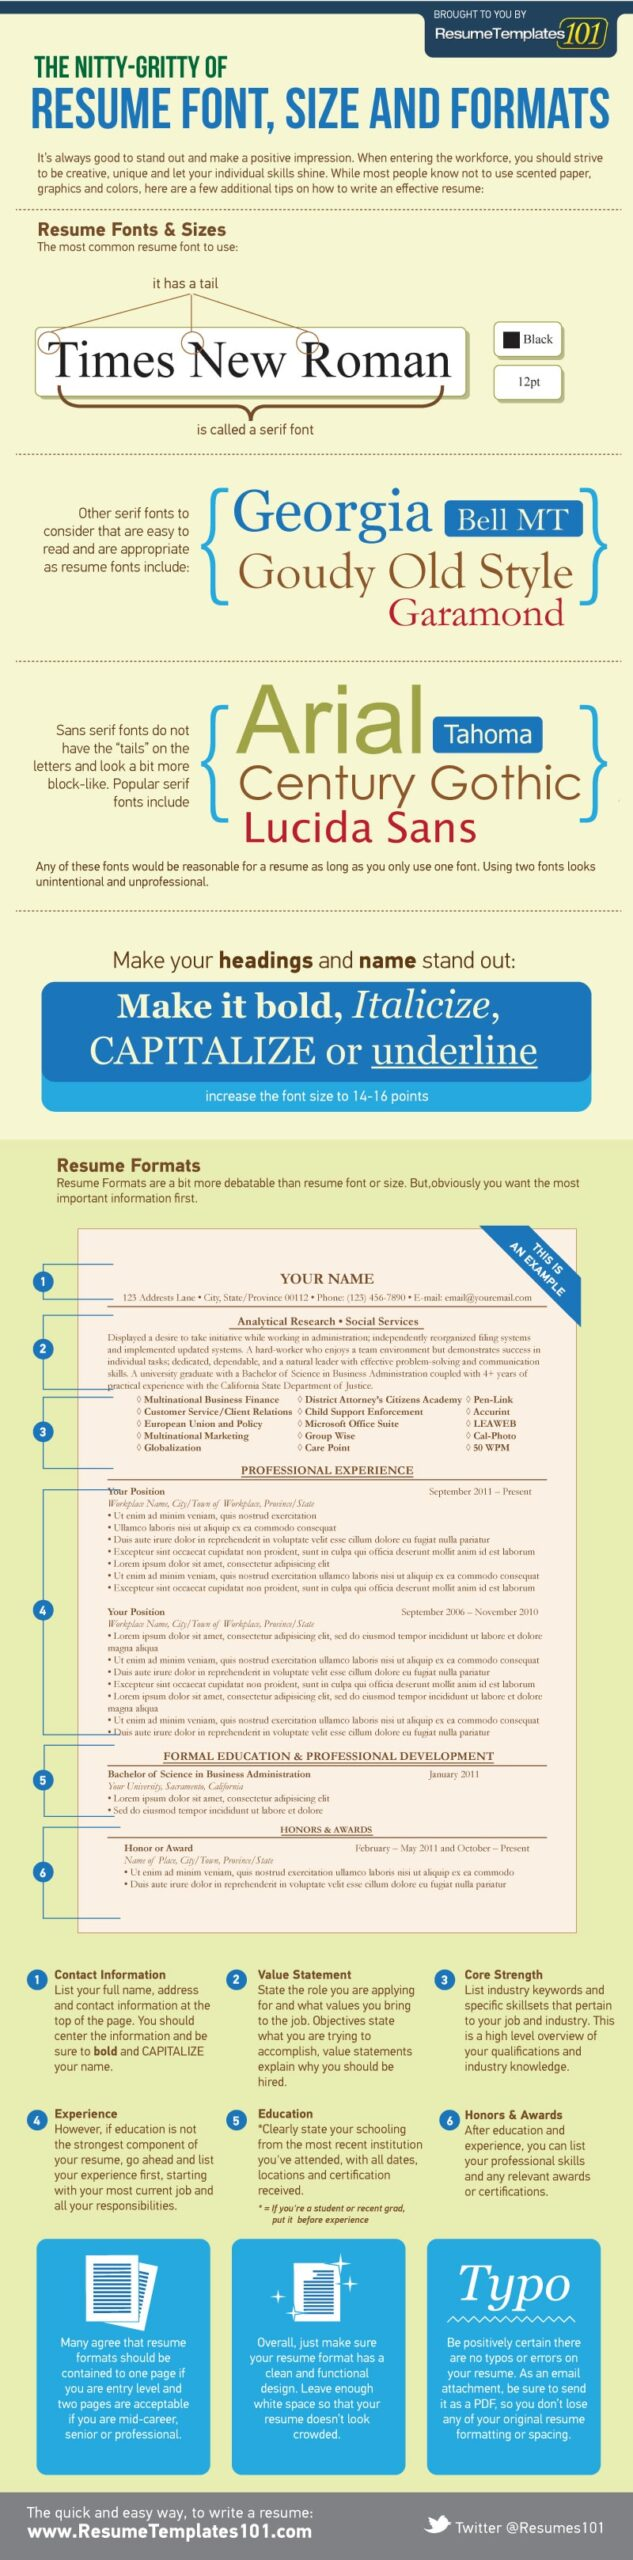 the best resume font size and format most common fonts victor cheng consulting toolkit Resume Most Common Resume Font